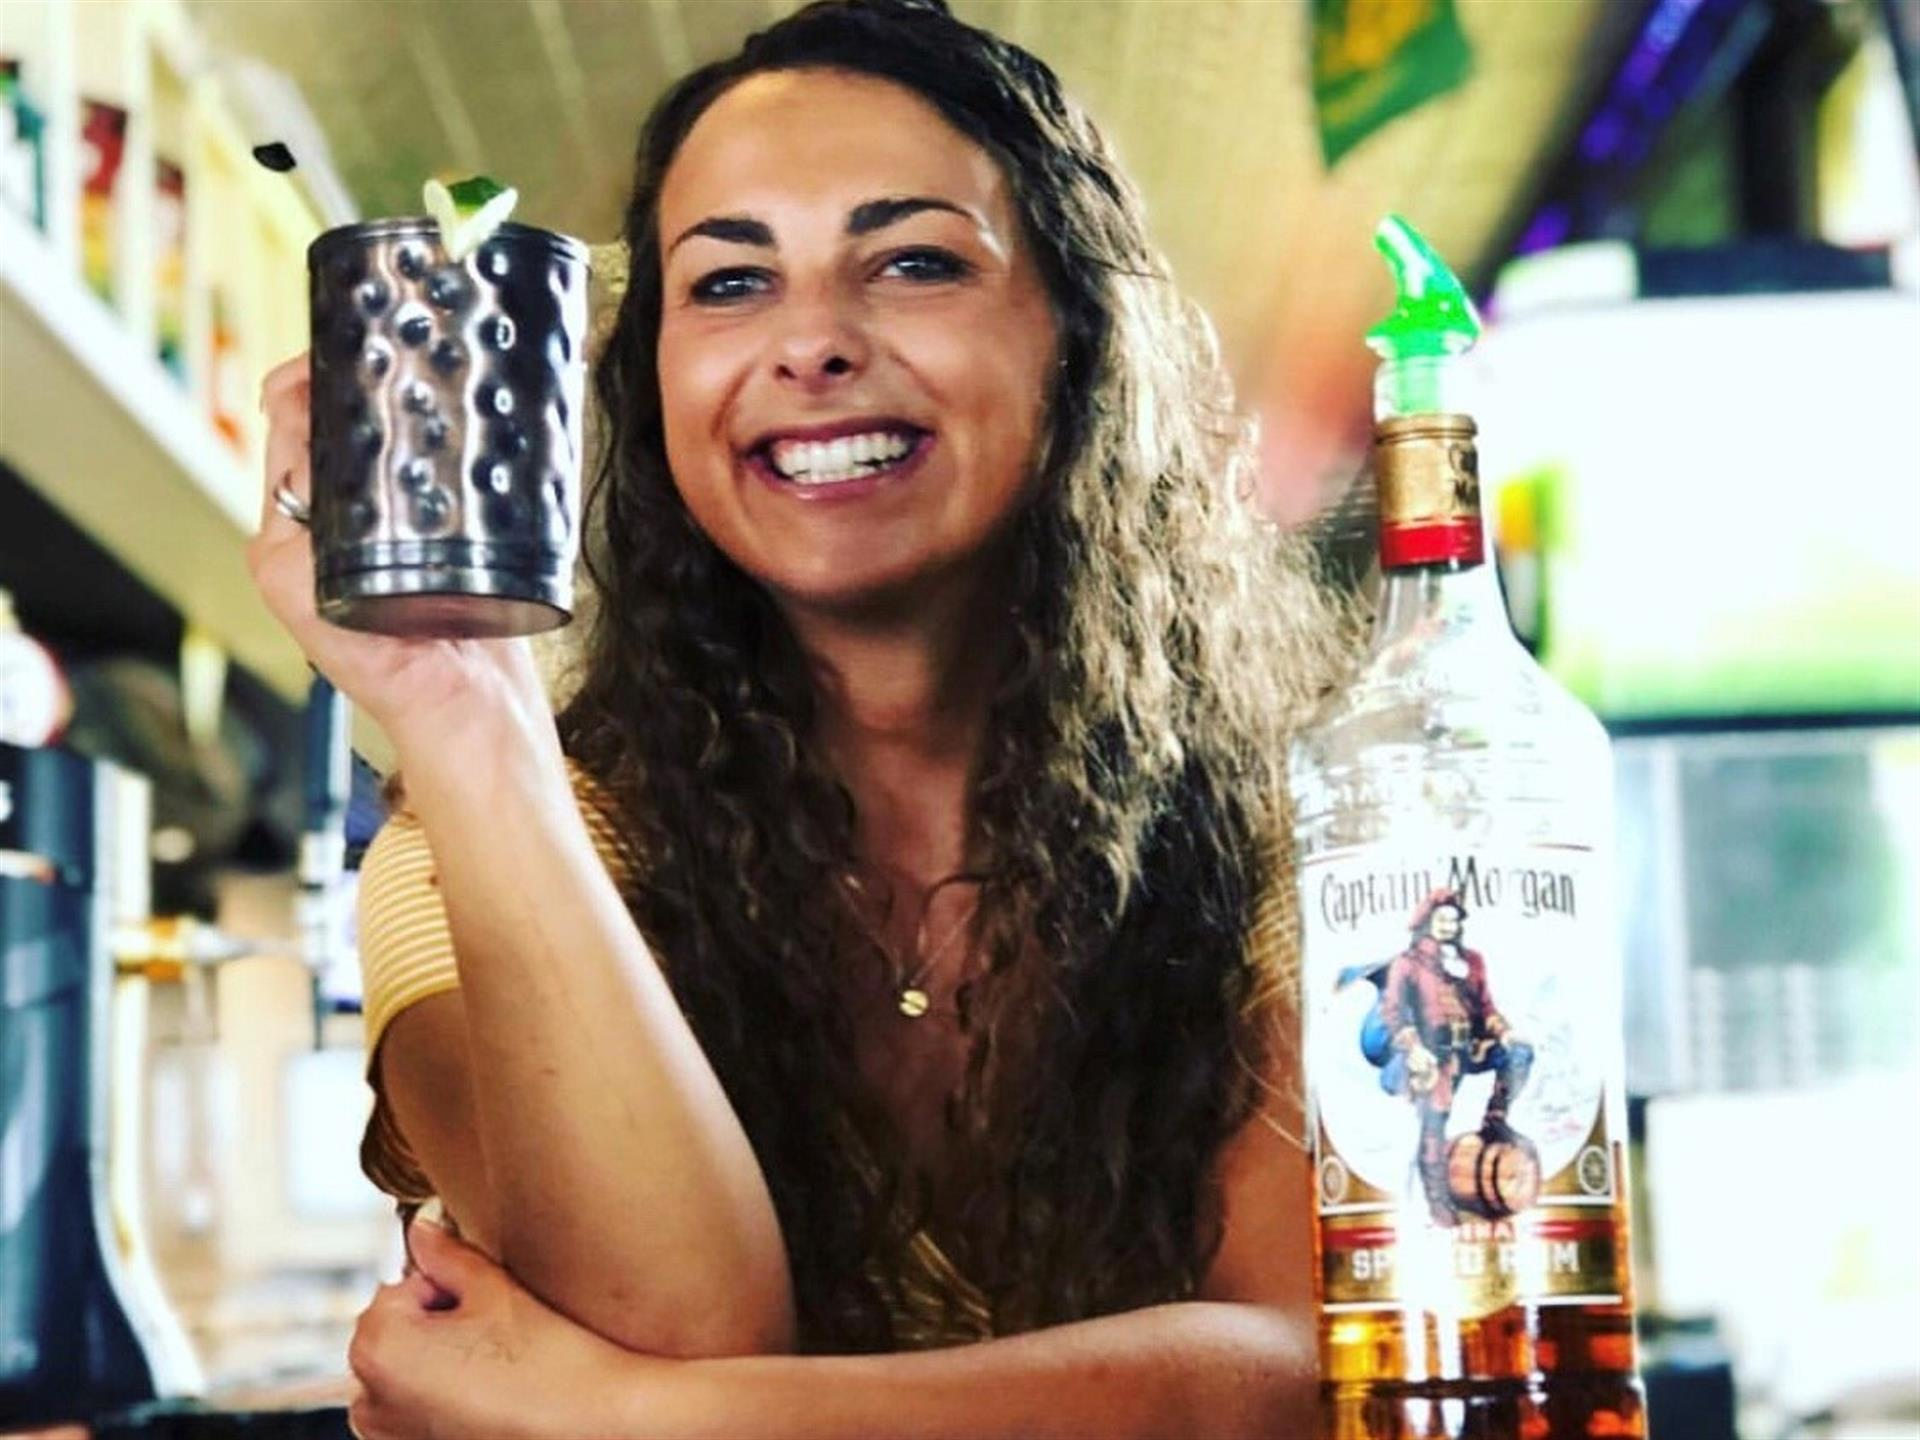 Bartender with brown hair